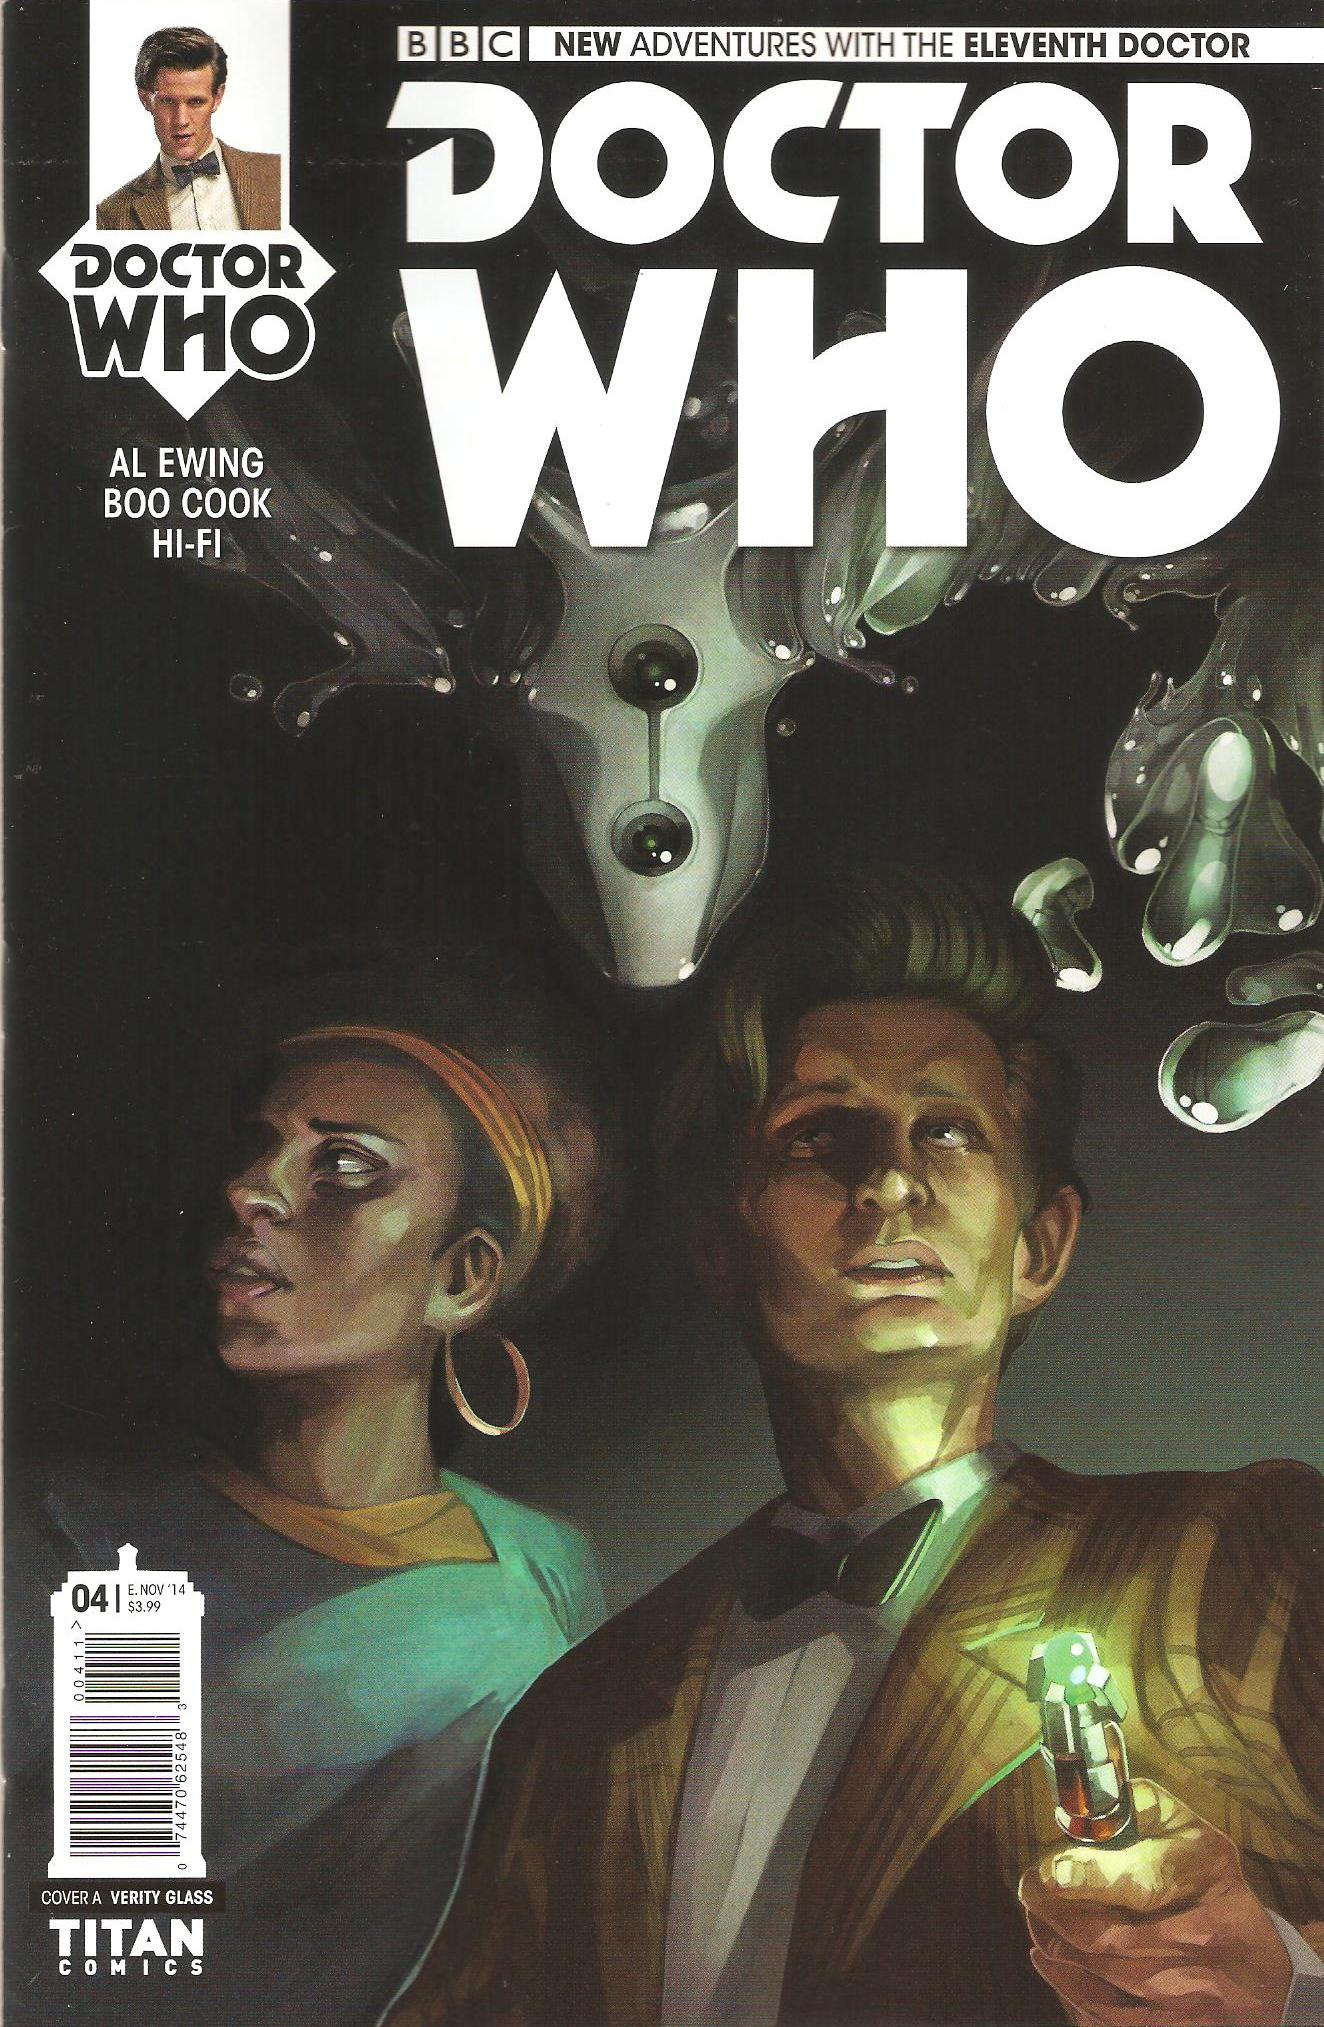 Eleventh doctor issue 4a